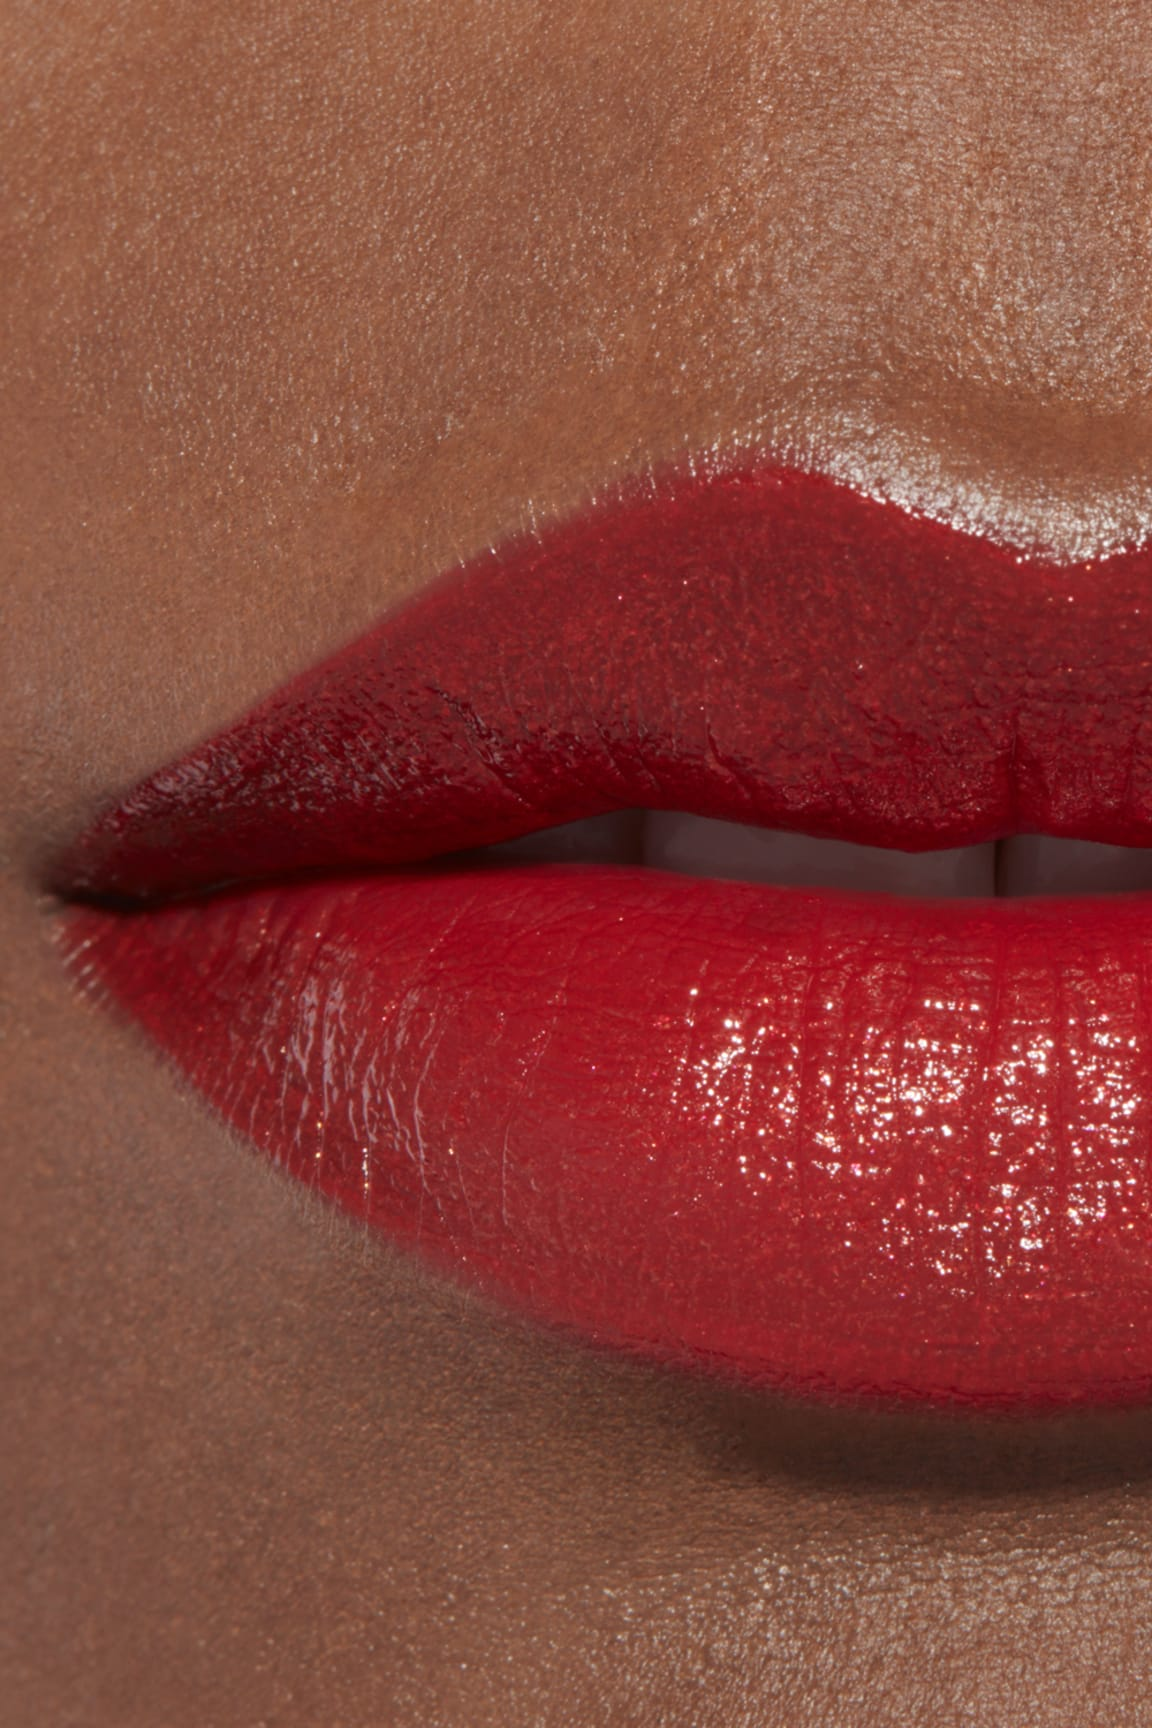 Application makeup visual 2 - ROUGE ALLURE 127 - ROUGE D'OR